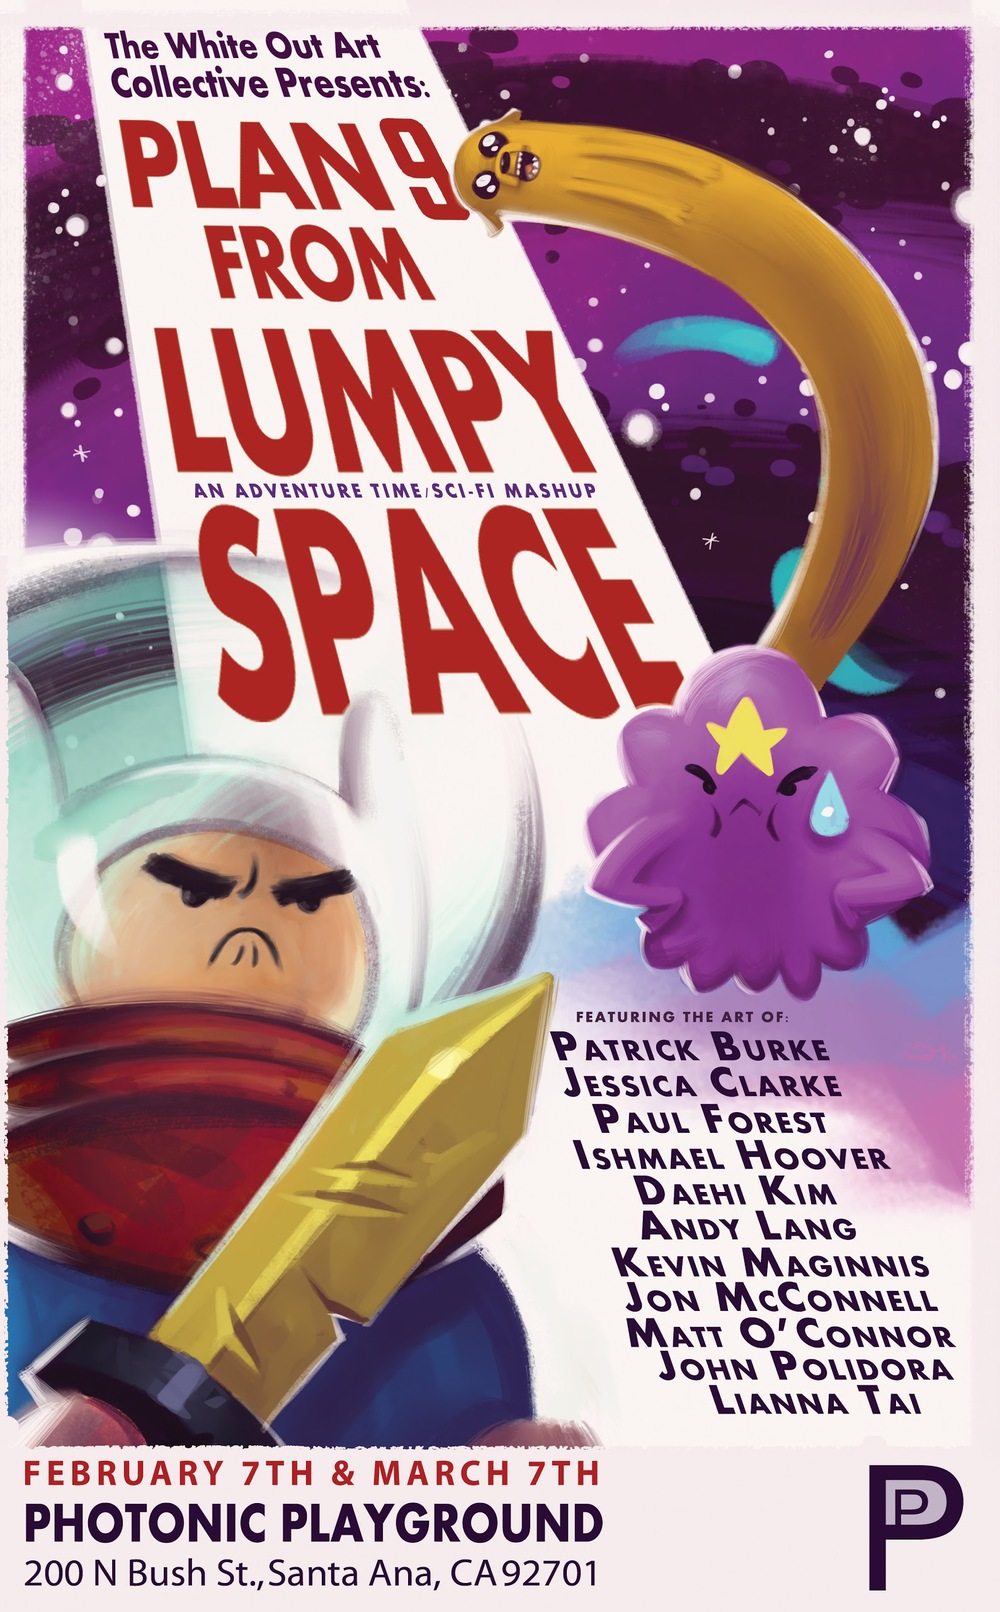 'Plan 9 from Lumpy Space' exhibit promotional poster painted by Jon McConnell for The White Out Art Collective.